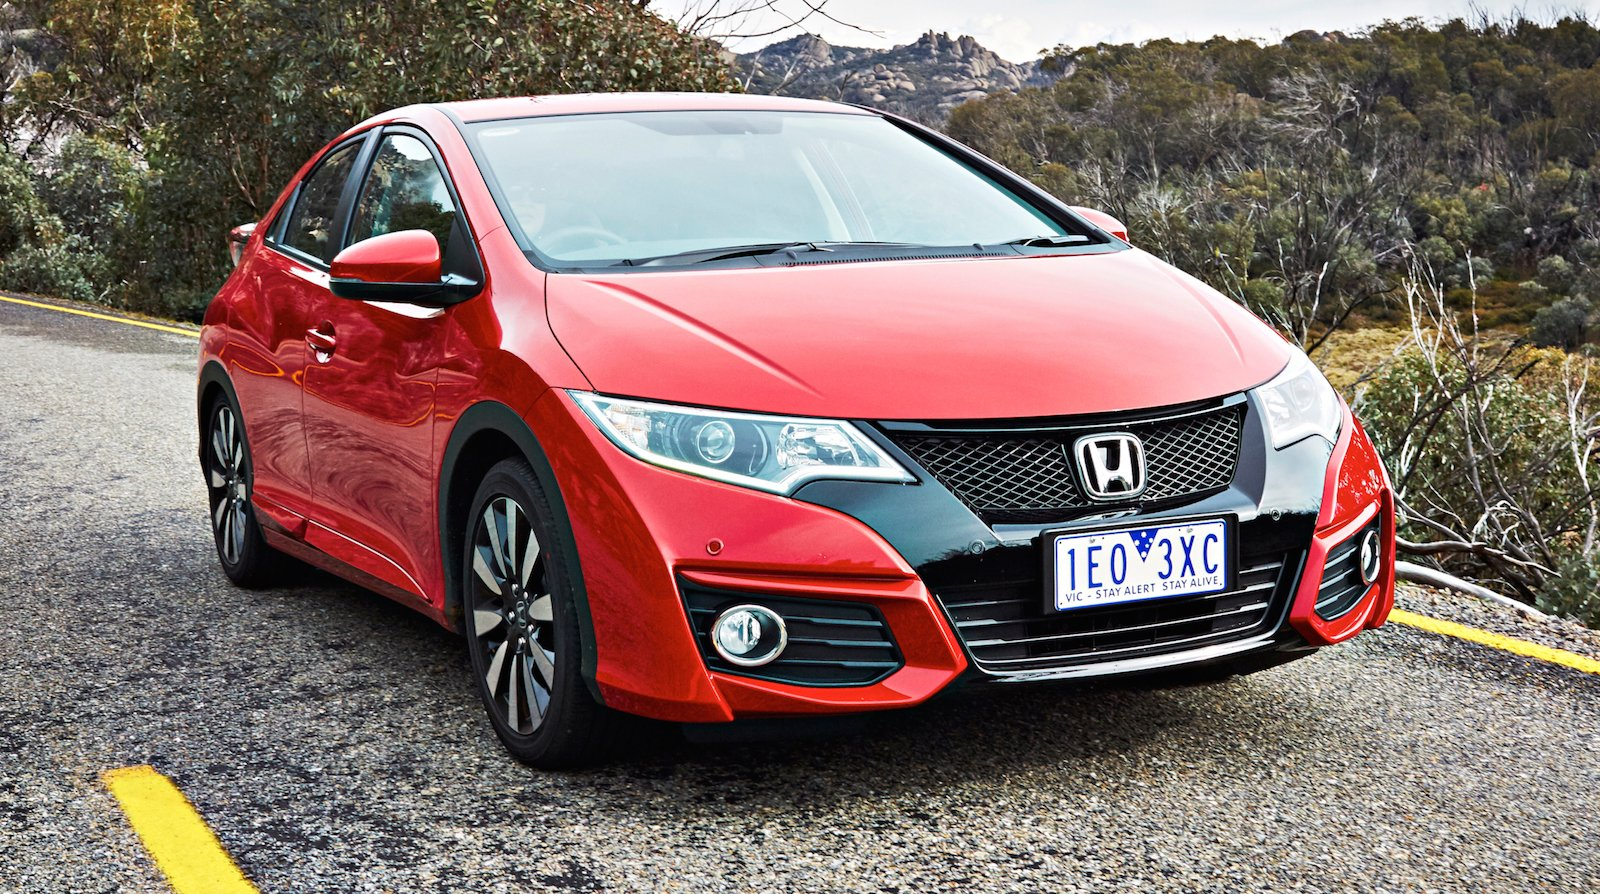 2015 honda civic hatch pricing and specifications photos caradvice. Black Bedroom Furniture Sets. Home Design Ideas